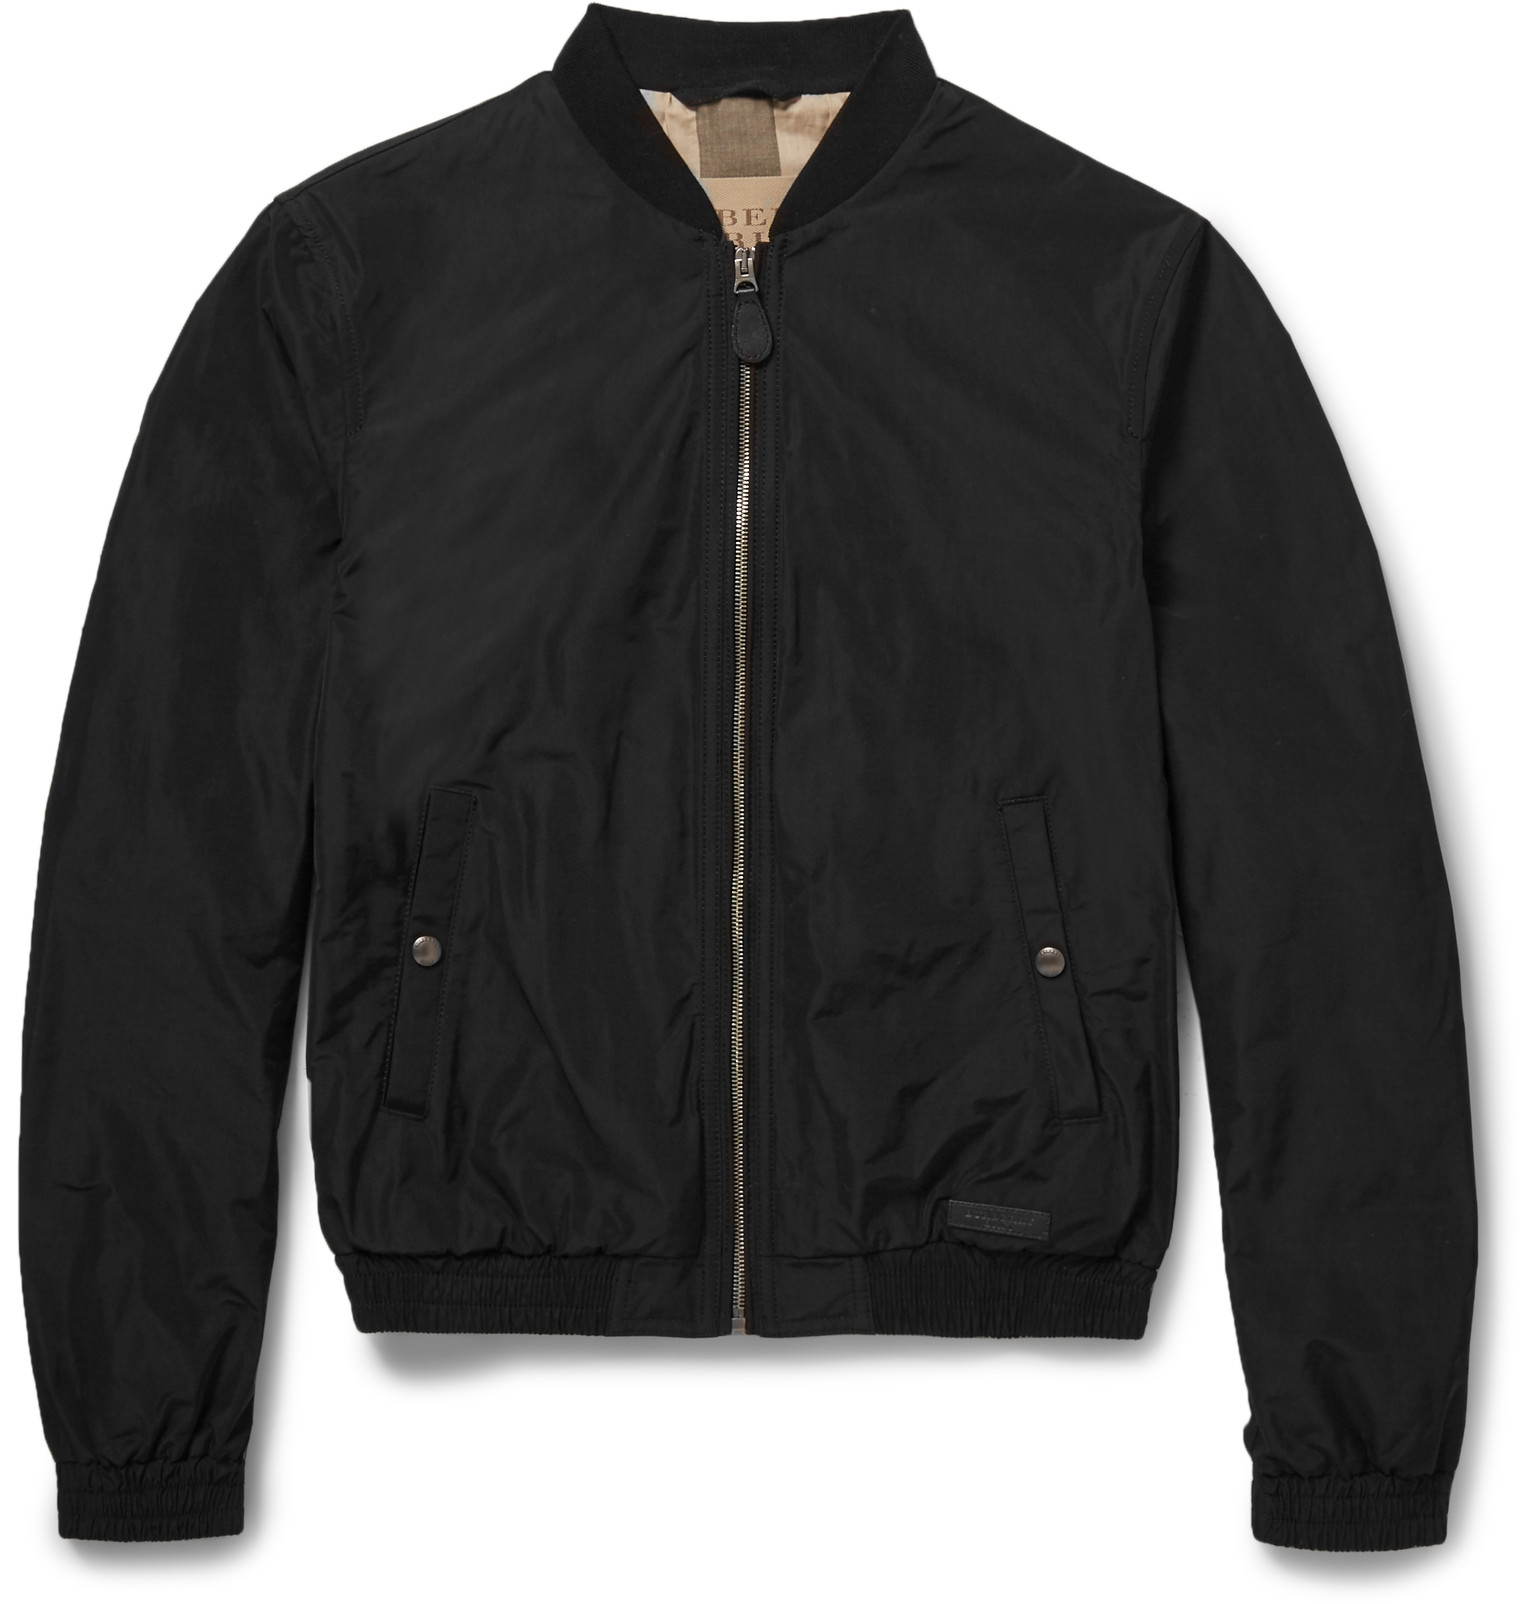 Define Bomber Jacket - My Jacket